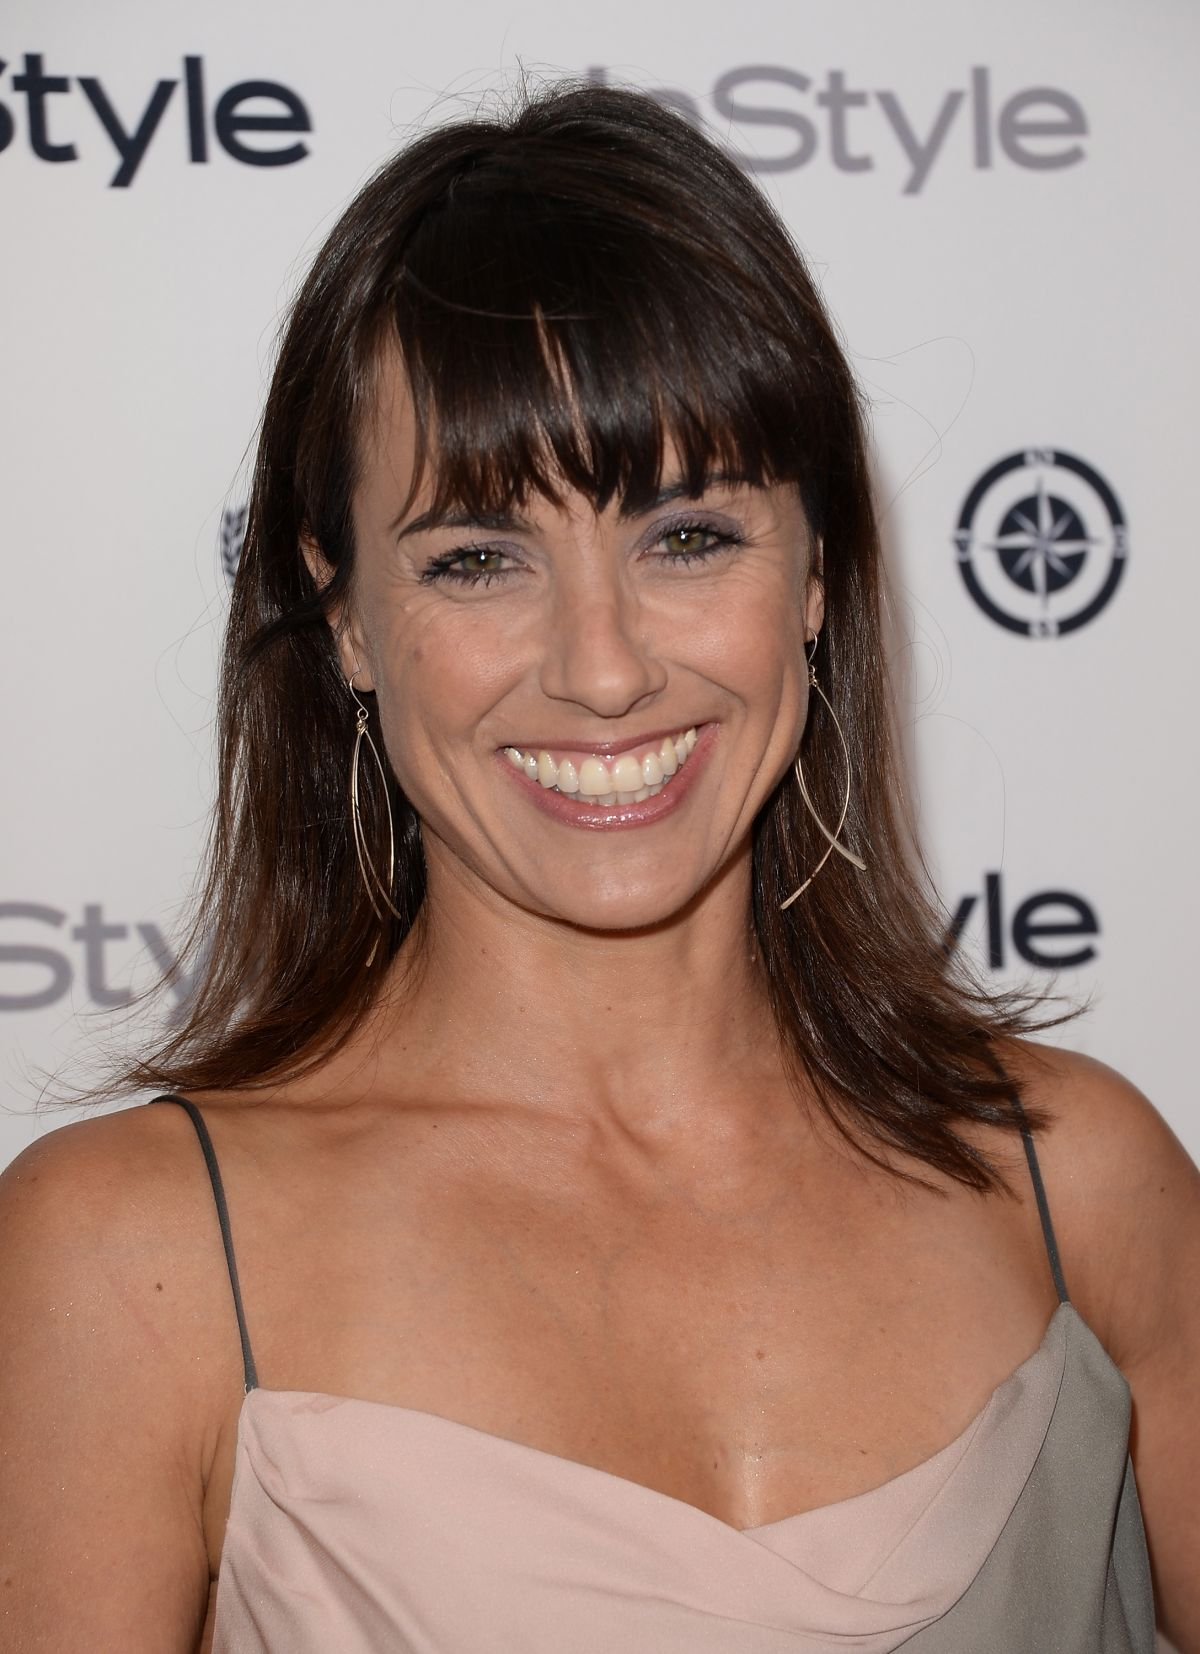 The 46-year old daughter of father Gunter Zimmer and mother Ingrid Mueller, 168 cm tall Constance Zimmer in 2017 photo